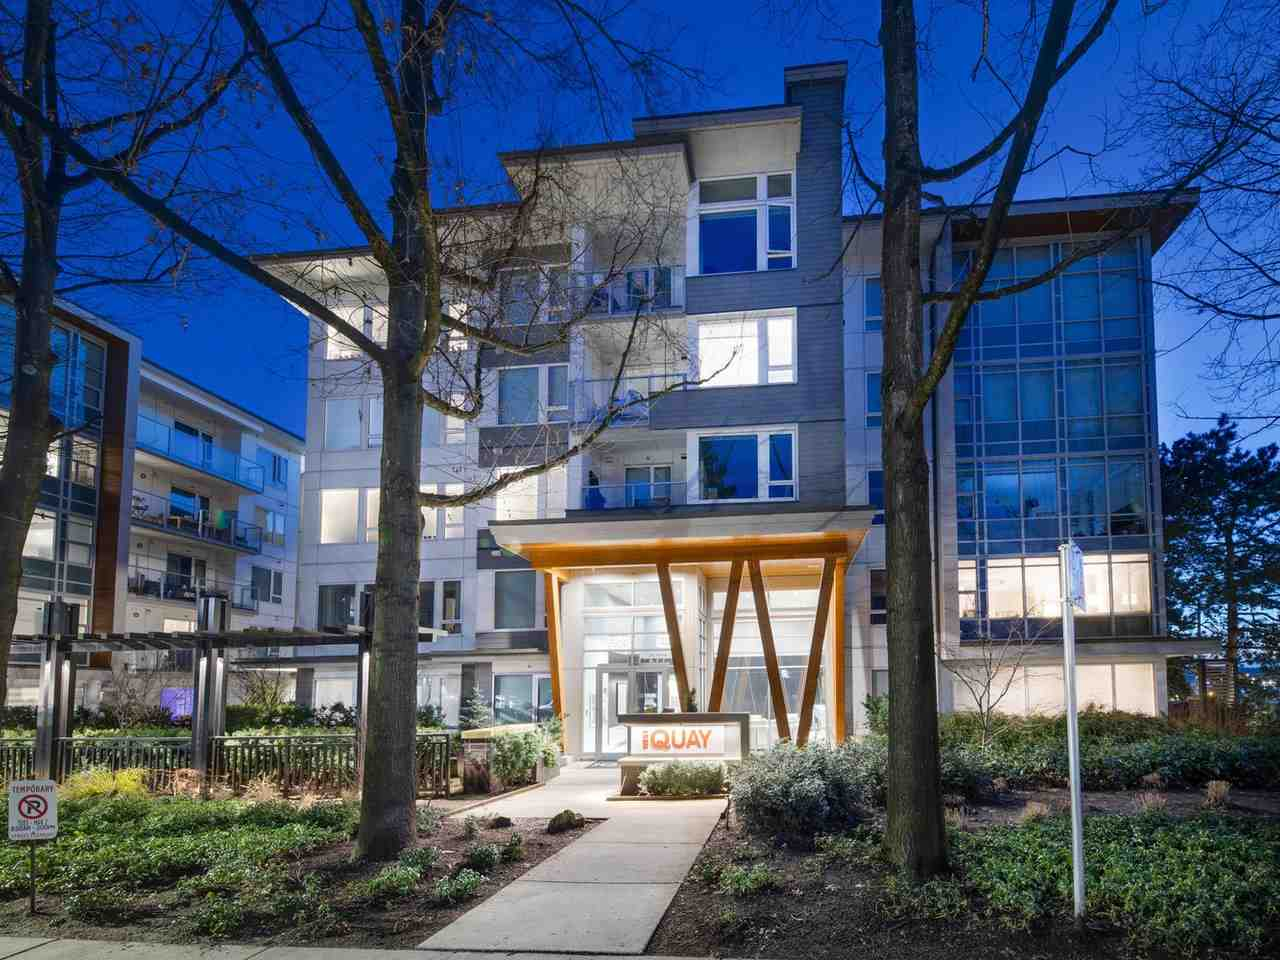 310 277 W 1ST STREET - Lower Lonsdale Apartment/Condo for sale, 2 Bedrooms (R2546743) - #1